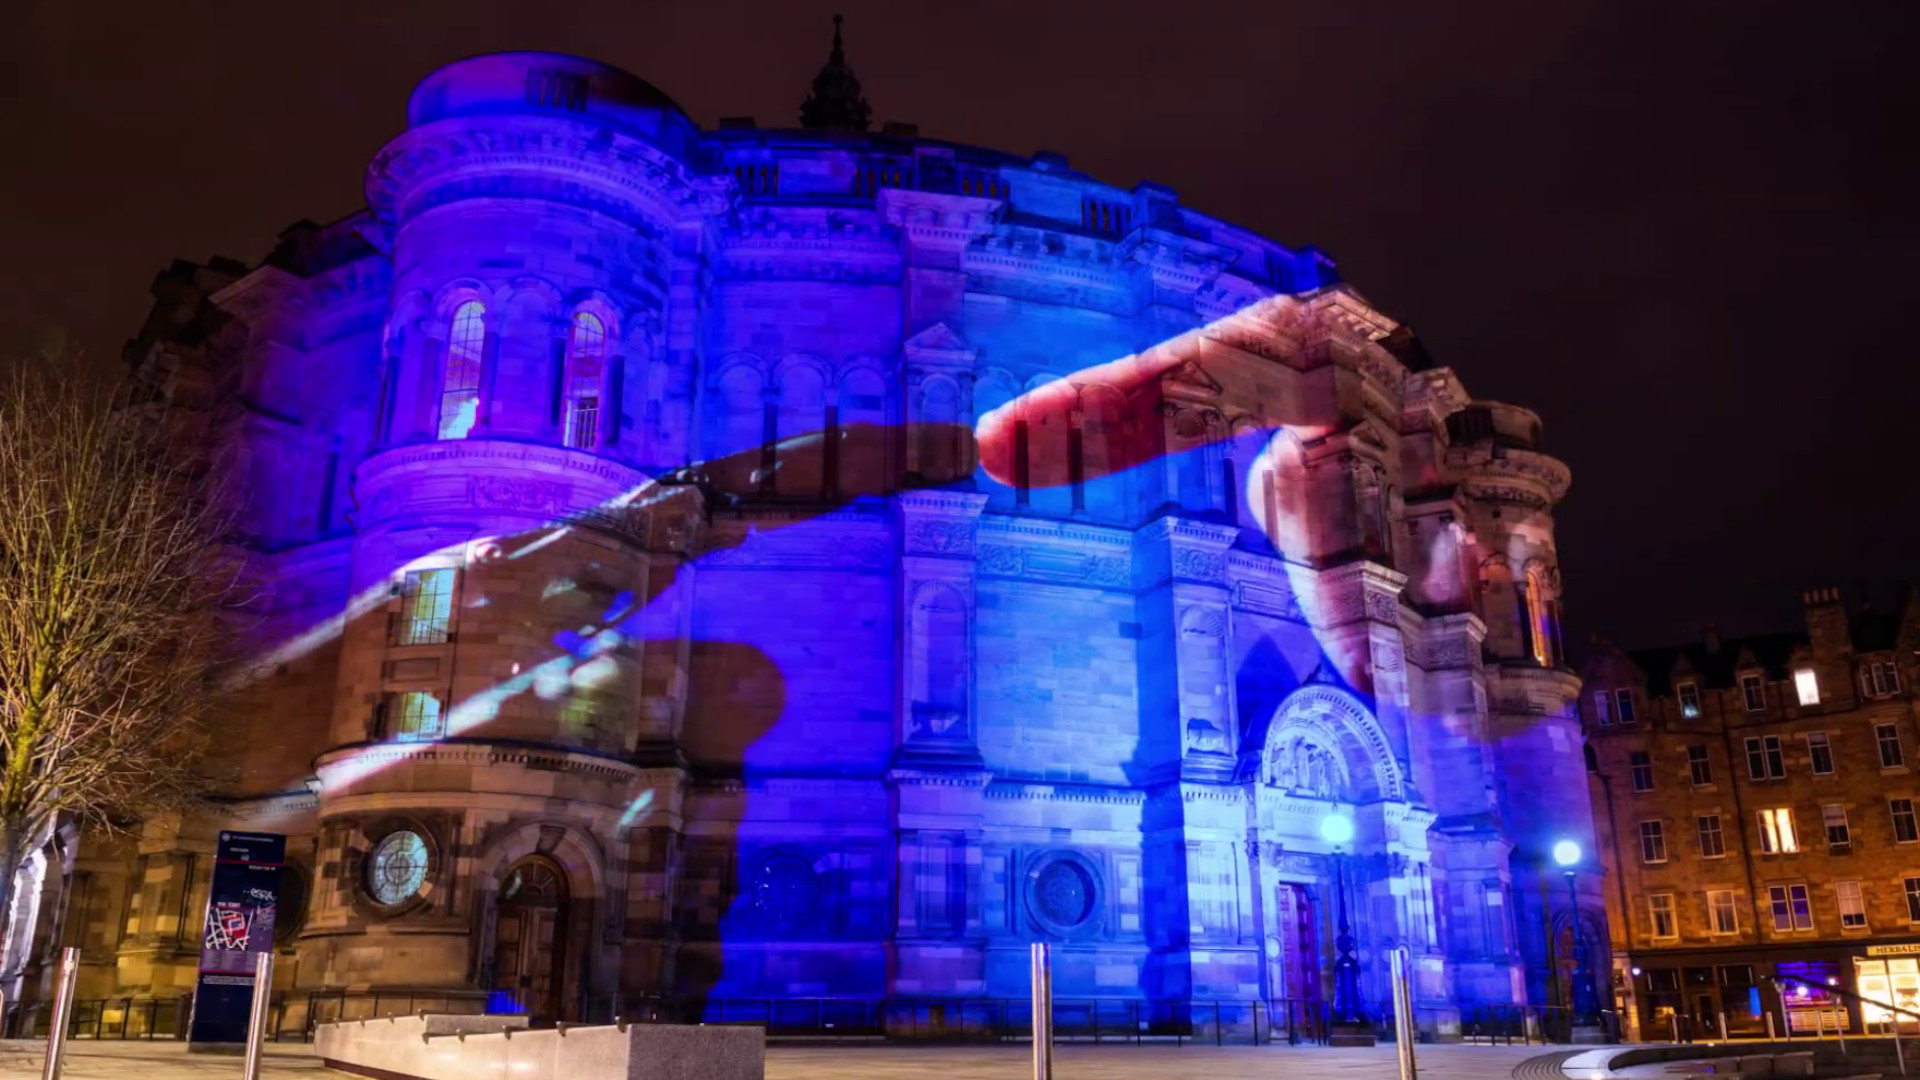 McEwan Hall, Journey to Change Campaign of VisitScotland